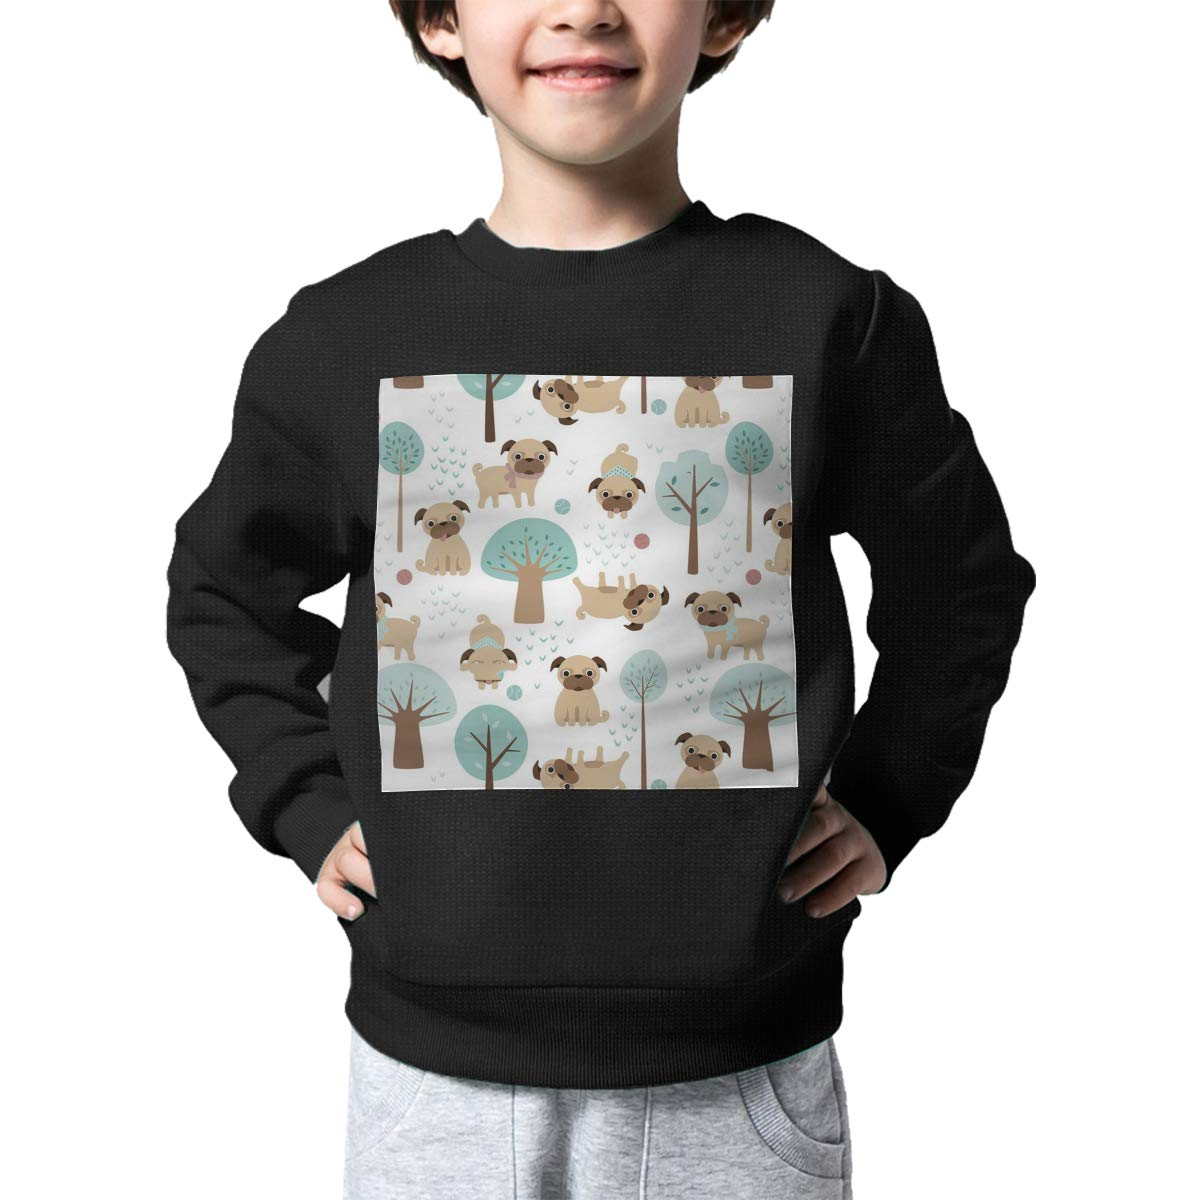 Pugs in The Park Pattern Printed Baby Girls Childrens Crew Neck Sweater Long Sleeve Soft Knitted Jumper Top